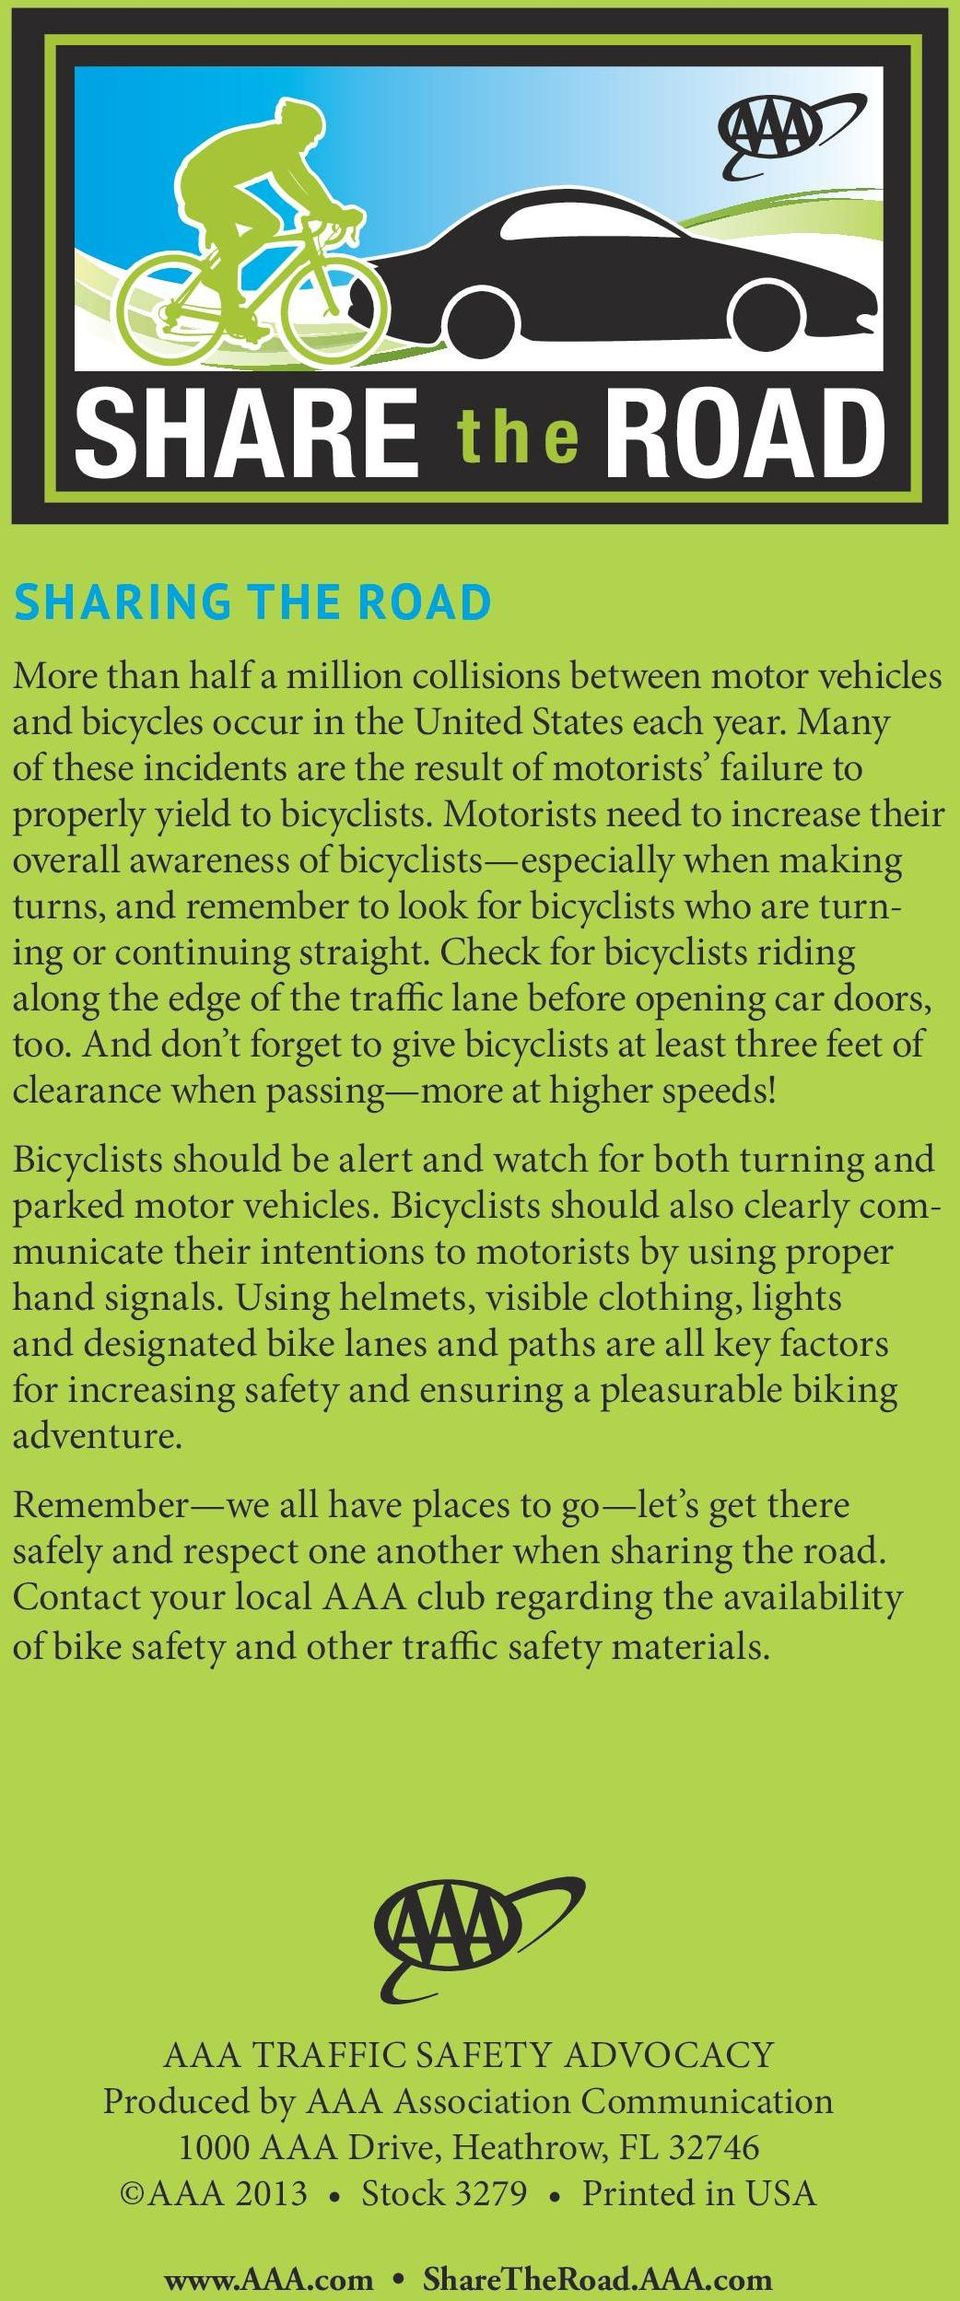 Motorists need to increase their overall awareness of bicyclists especially when making turns, and remember to look for bicyclists who are turning or continuing straight.